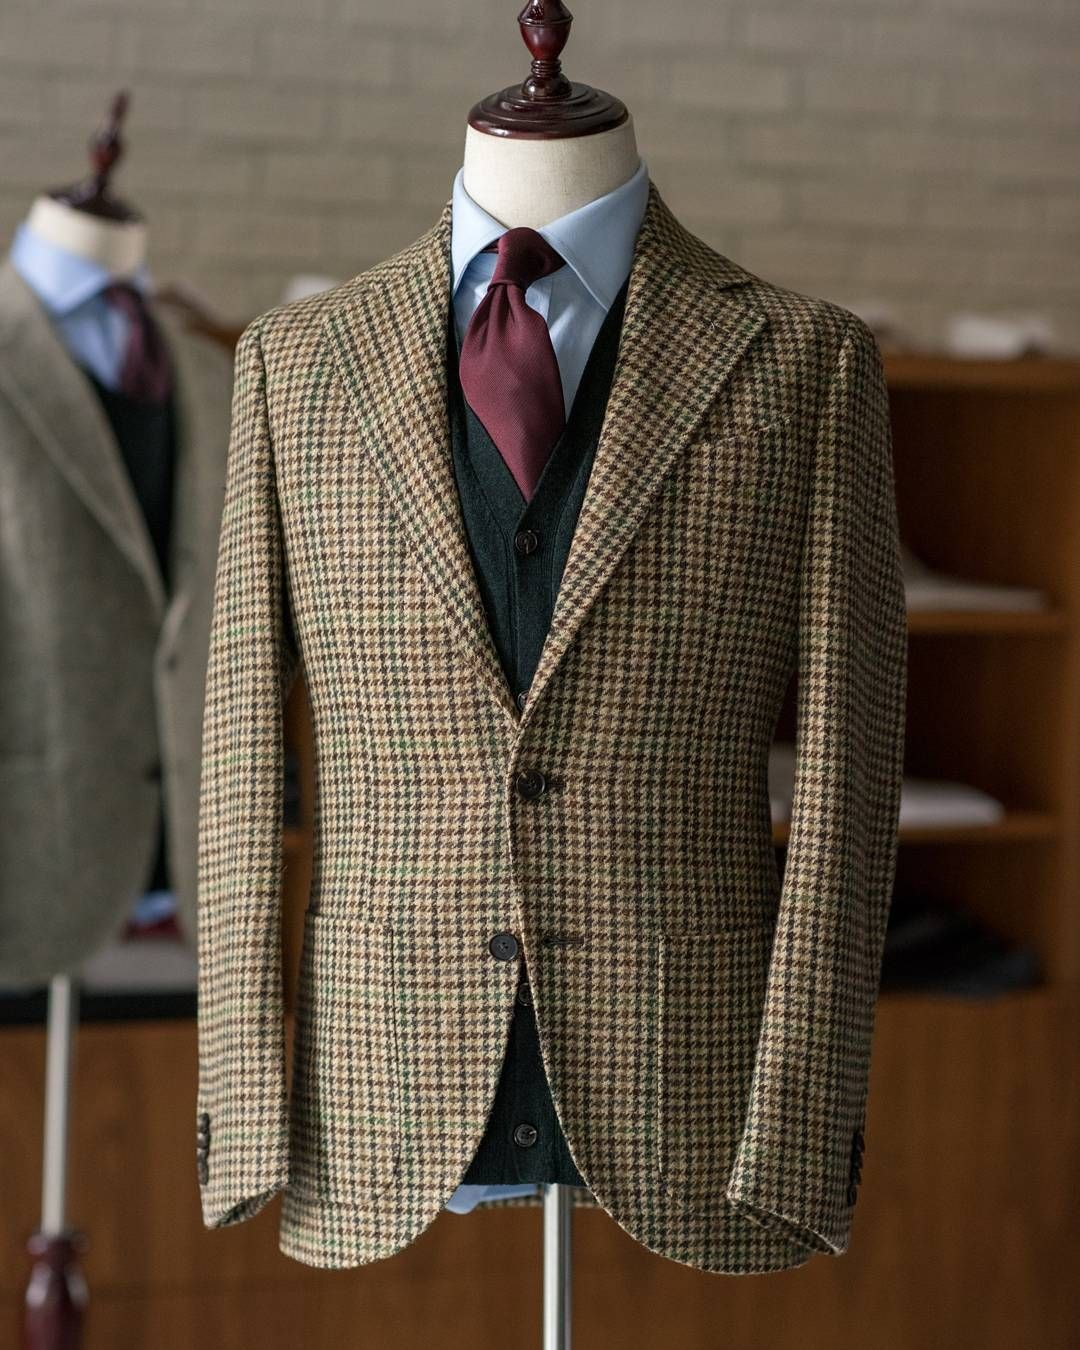 d9612d49c7c8 Abraham Moon Tweed Gun Check. An classic tweed pattern jacket in our  updated Neapolitan cut.  525 CAD. There has never been a better value…